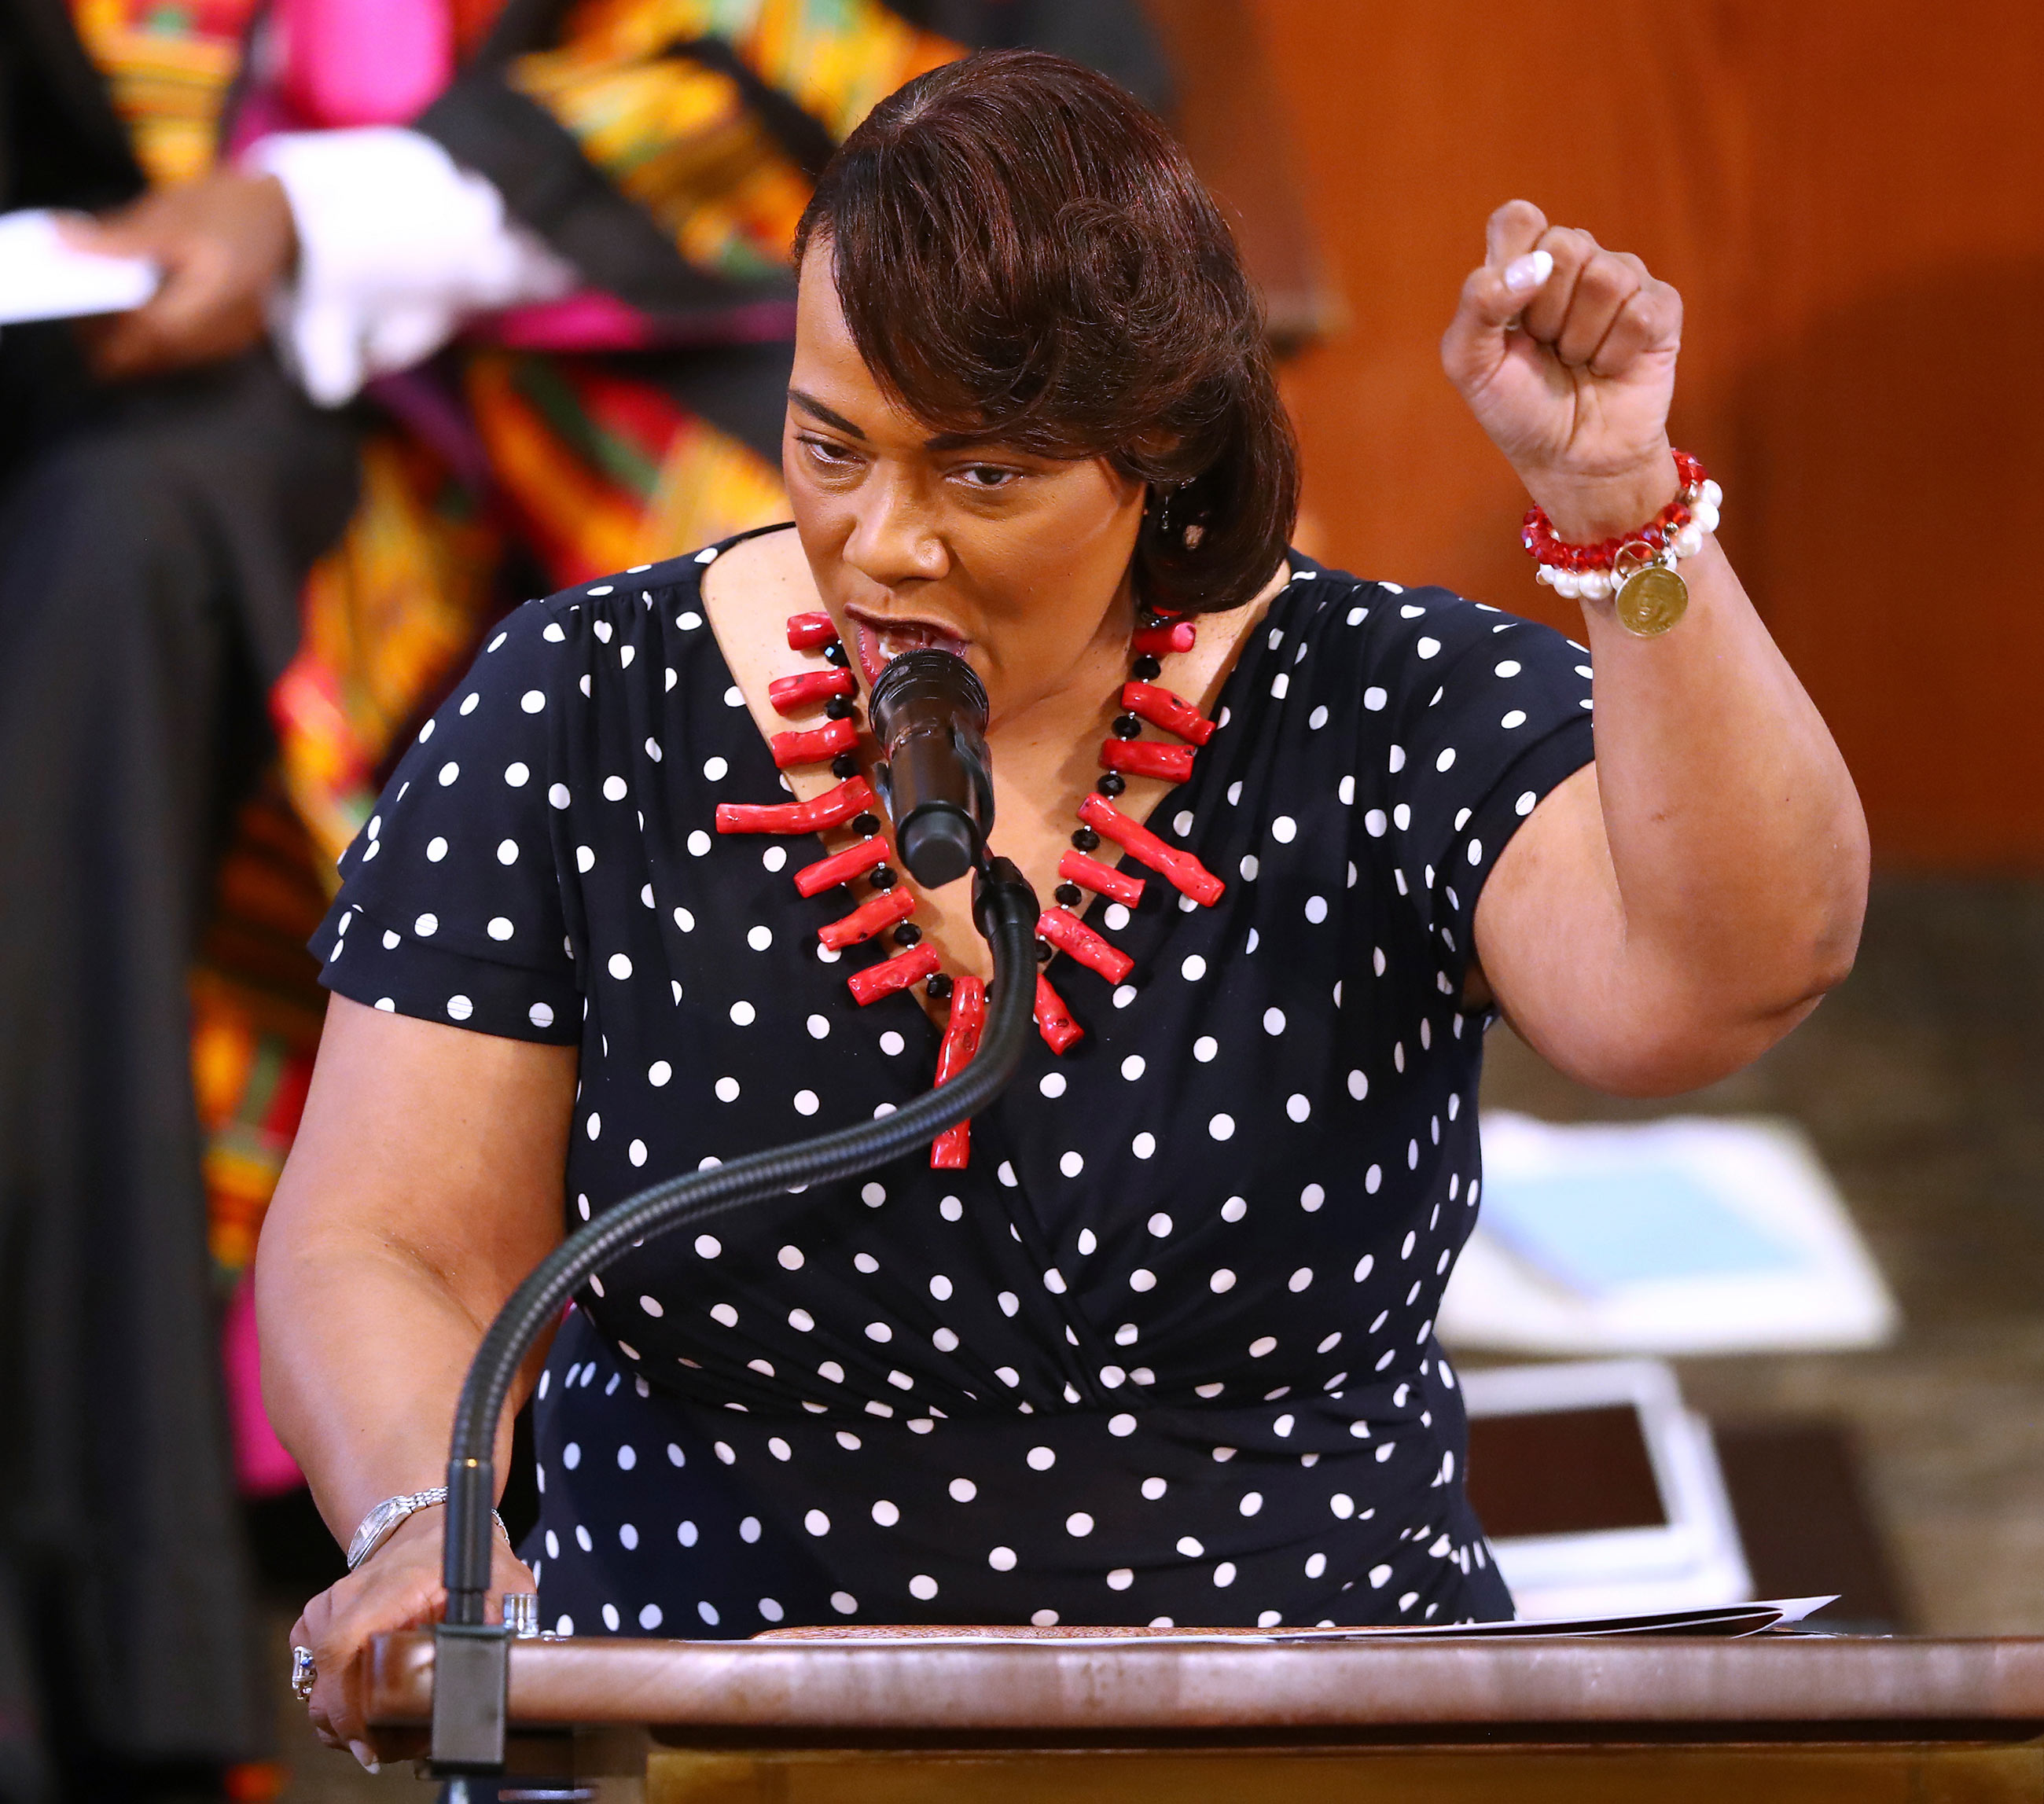 Rev. Dr. Bernice King makes a fist saying' no justice no peace' while speaking at Rayshard Brooks funeral in Ebenezer Baptist Church on June 23 in Atlanta.